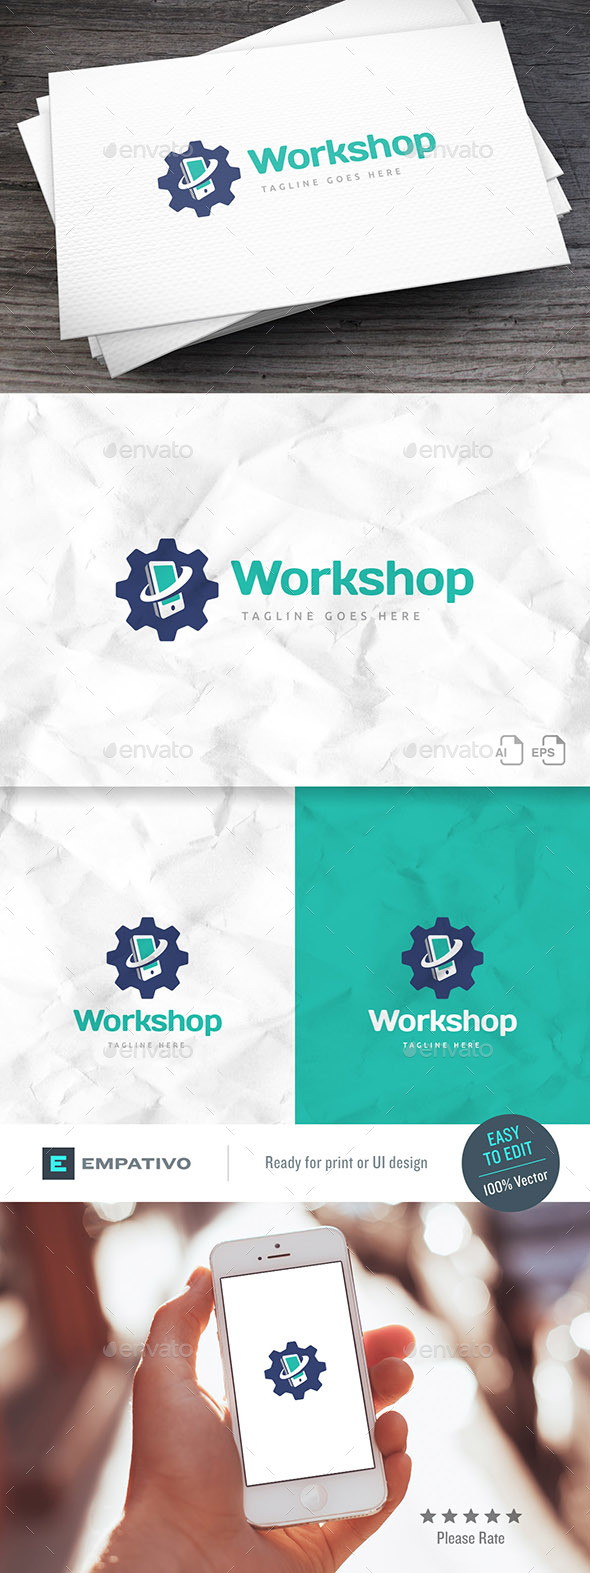 Mobile Workshop Logo Template - Symbols Logo Templates